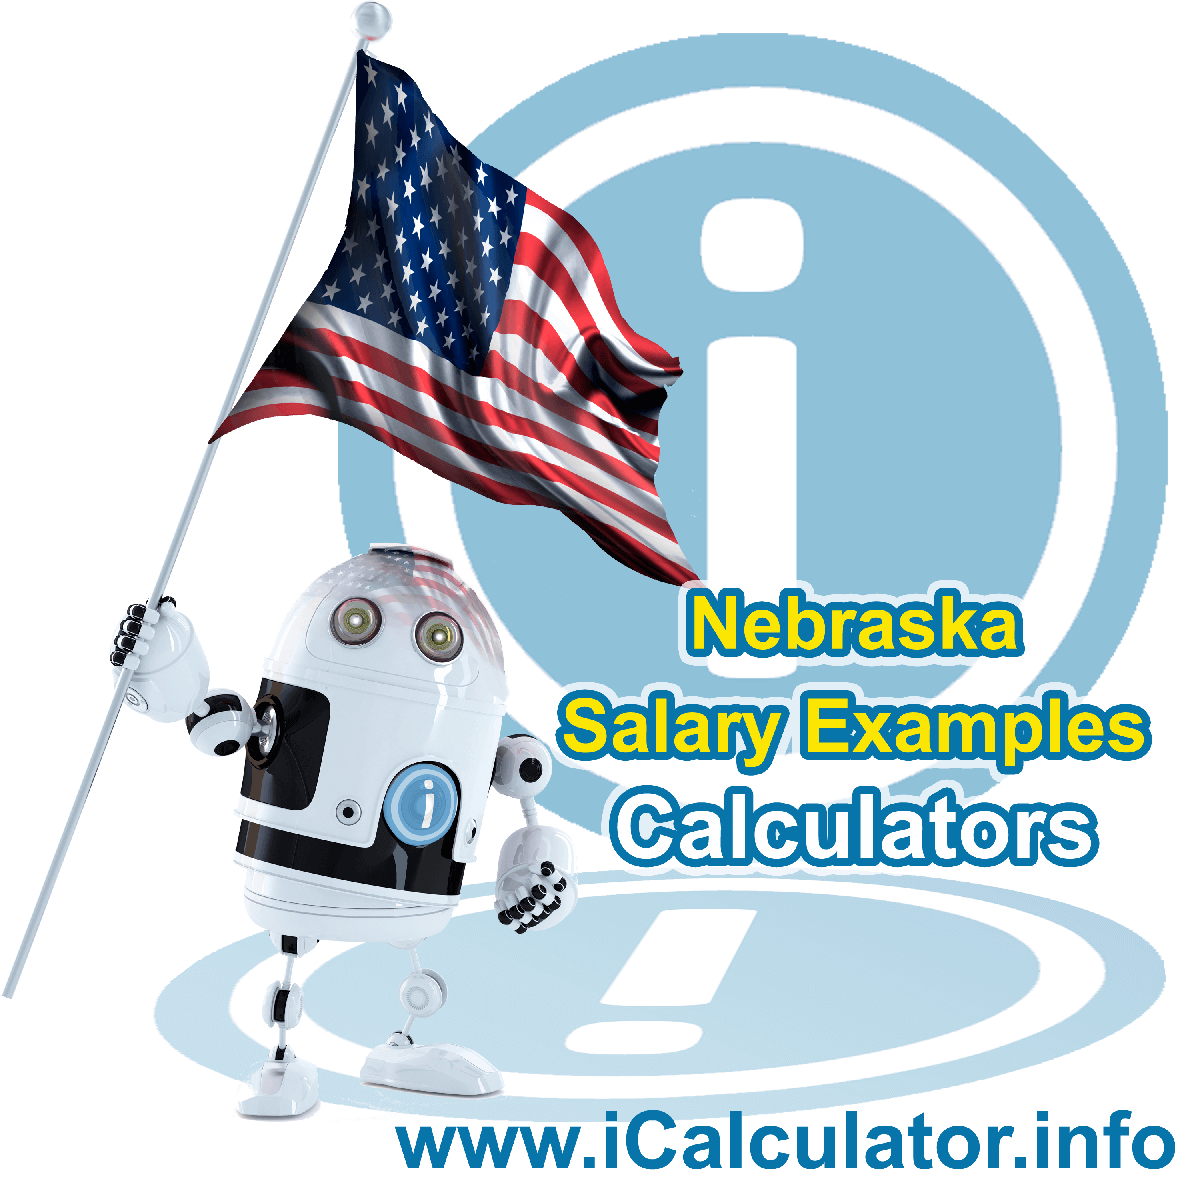 Nebraska Salary Example for $5,000.00 in 2020 | iCalculator | $5,000.00 salary example for employee and employer paying Nebraska State tincome taxes. Detailed salary after tax calculation including Nebraska State Tax, Federal State Tax, Medicare Deductions, Social Security, Capital Gains and other income tax and salary deductions complete with supporting Nebraska state tax tables